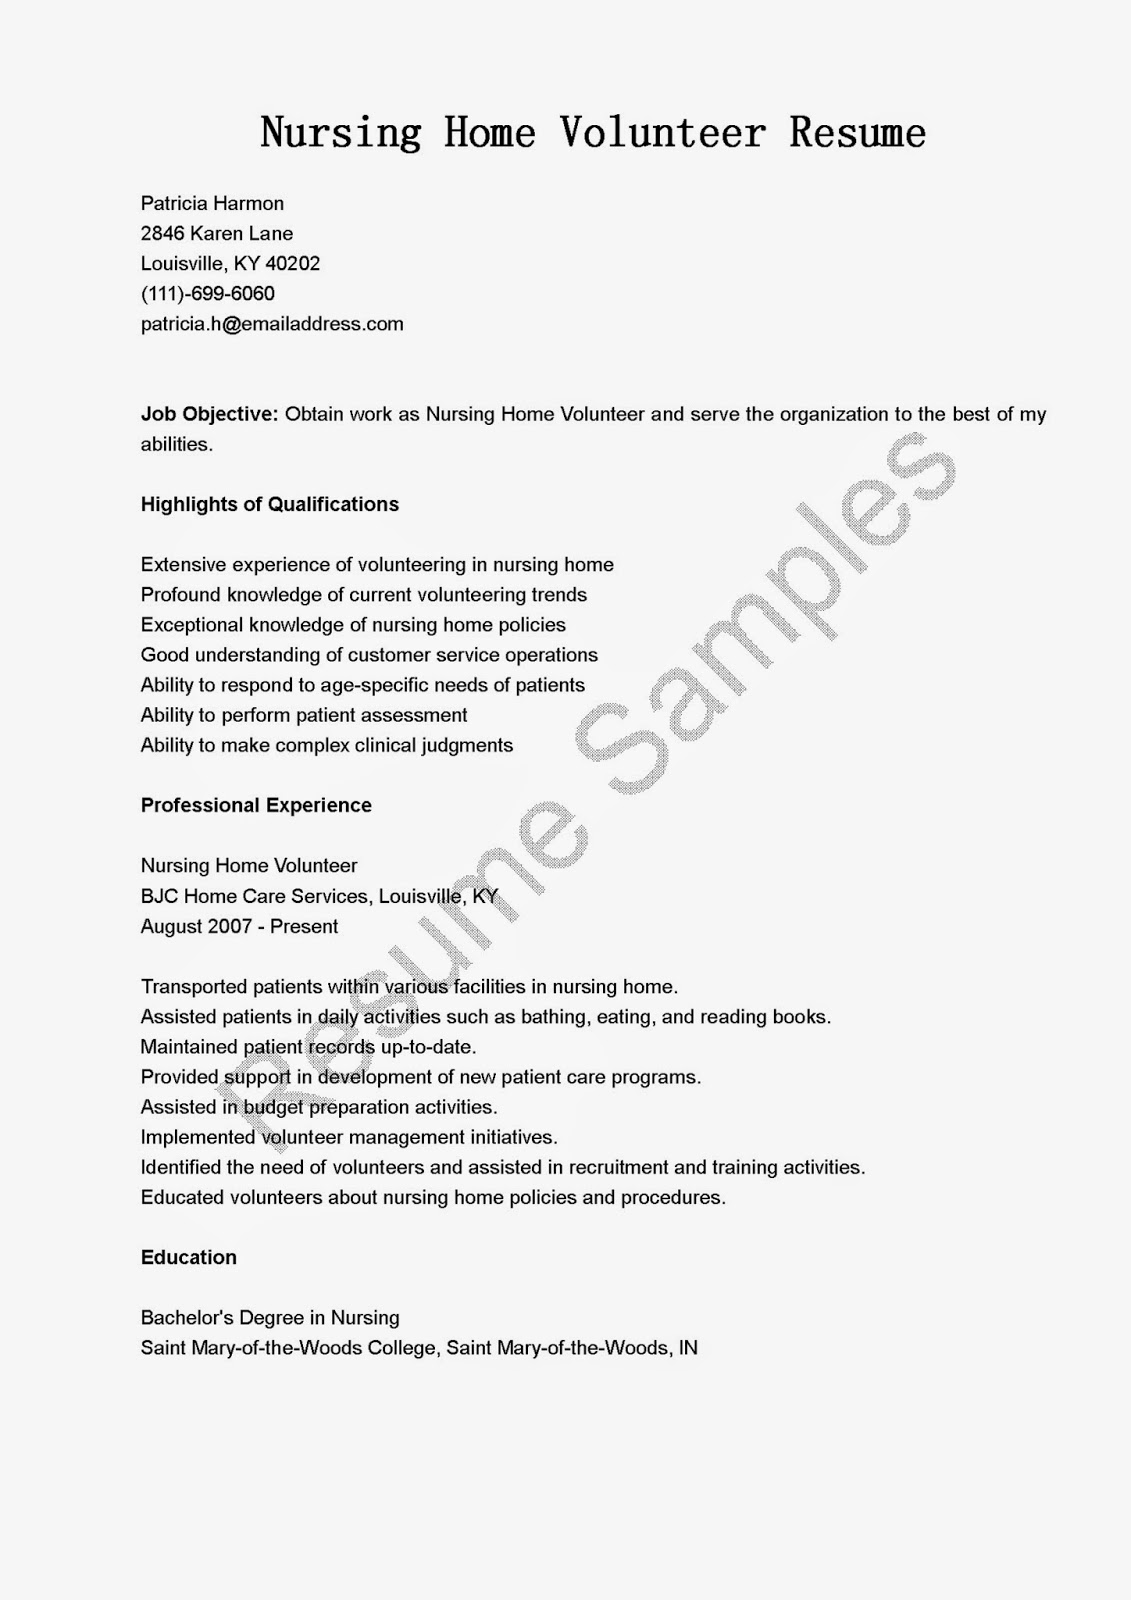 Resume Sample For Volunteer Work